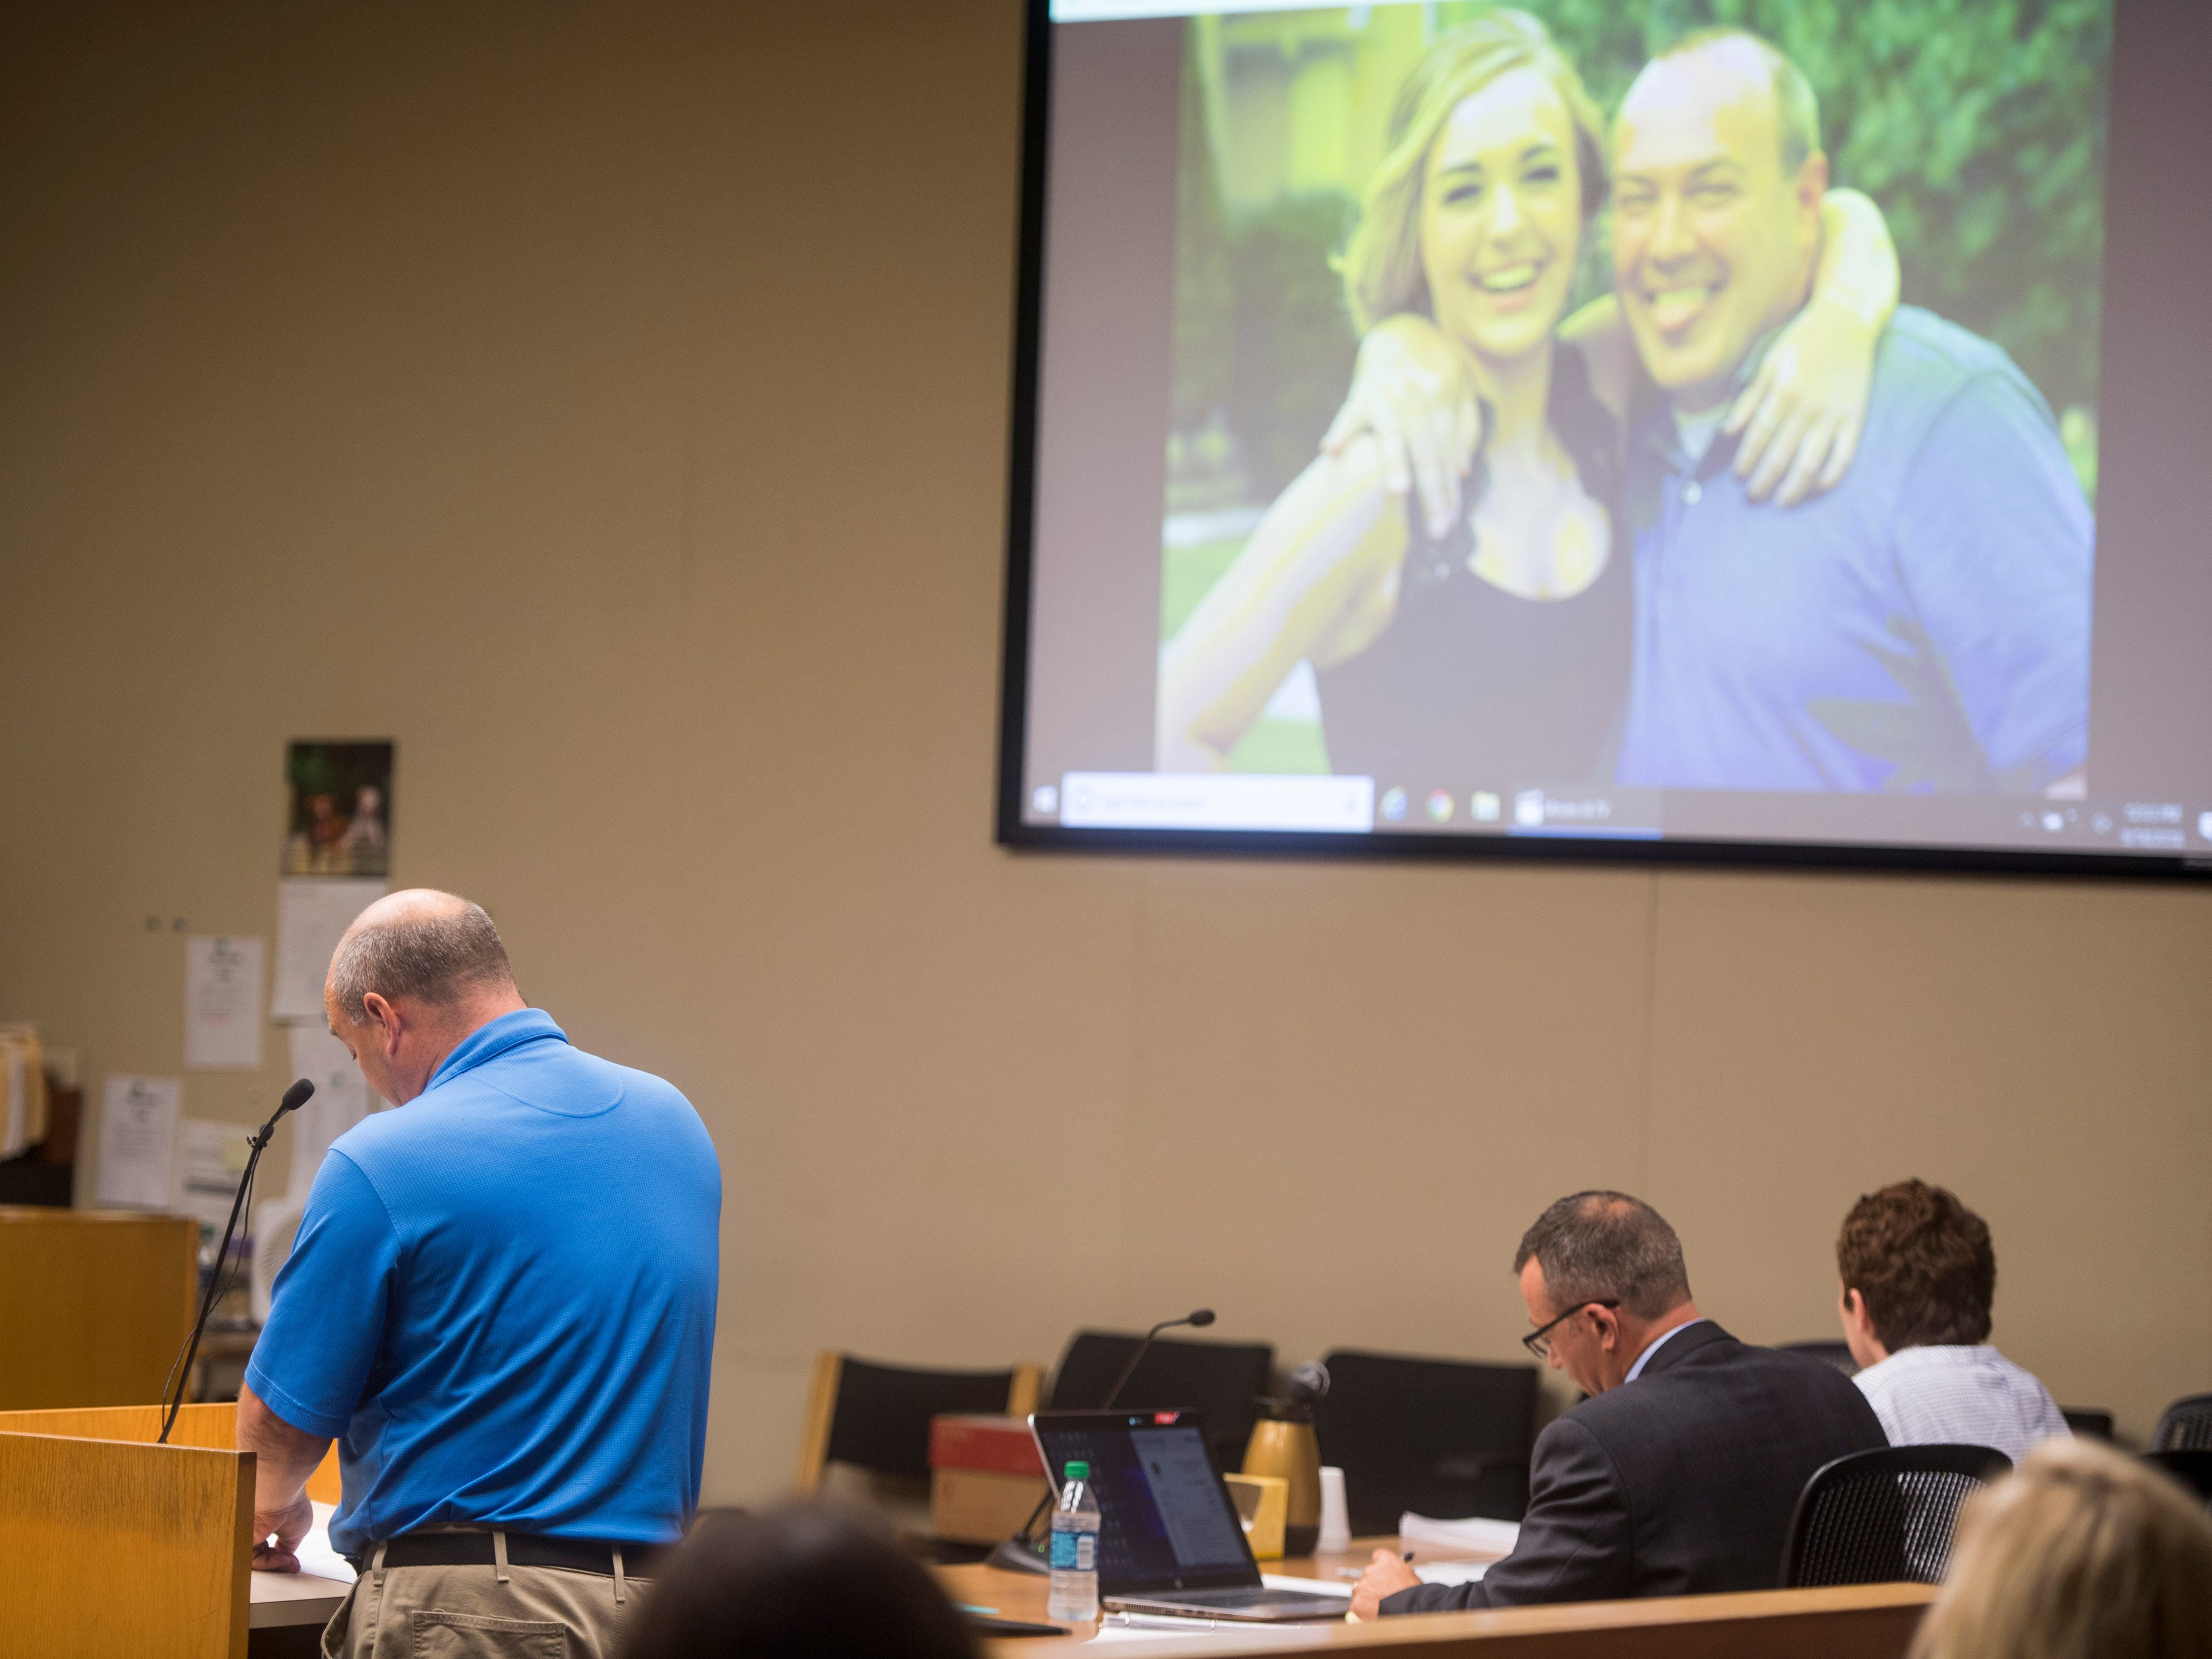 Photos of Emma Jane Walker are shown on a screen as Walker's father Mark Walker gives a victim impact statement at William Riley Gaul's sentencing in Knox County Criminal Court on Friday, September 14, 2018.